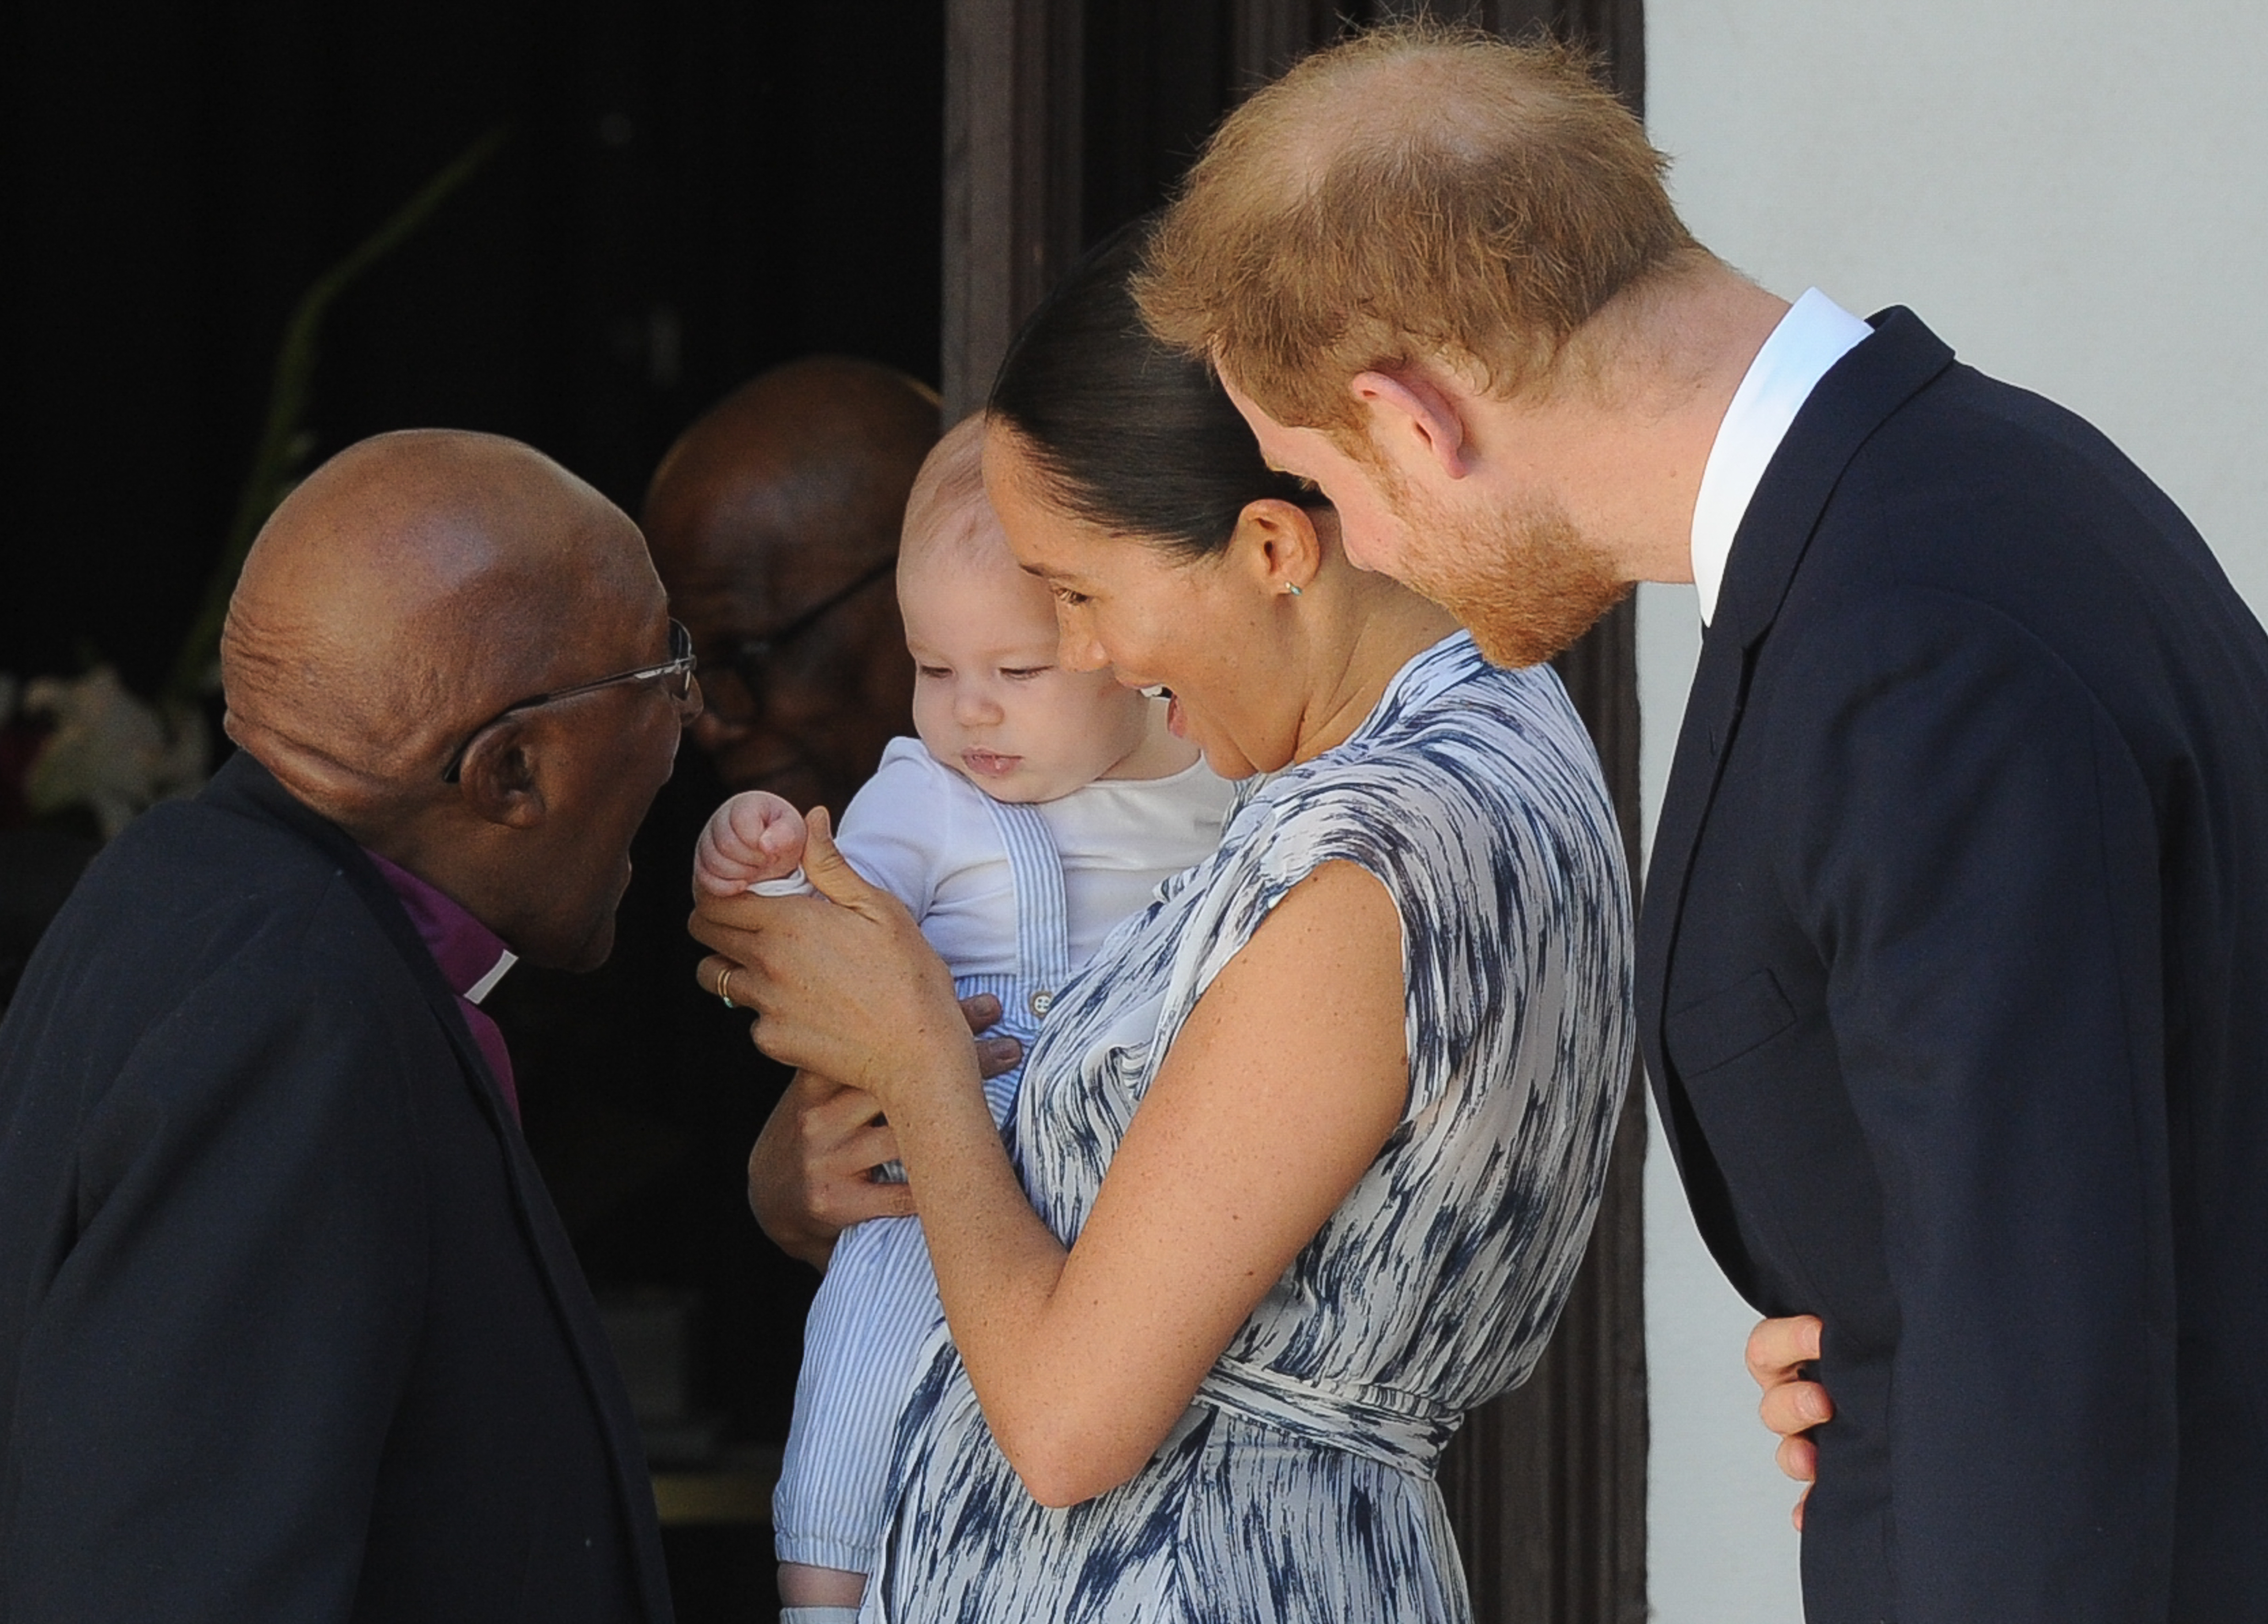 Royal baby Archie meets South Africa's Archbishop Tutu